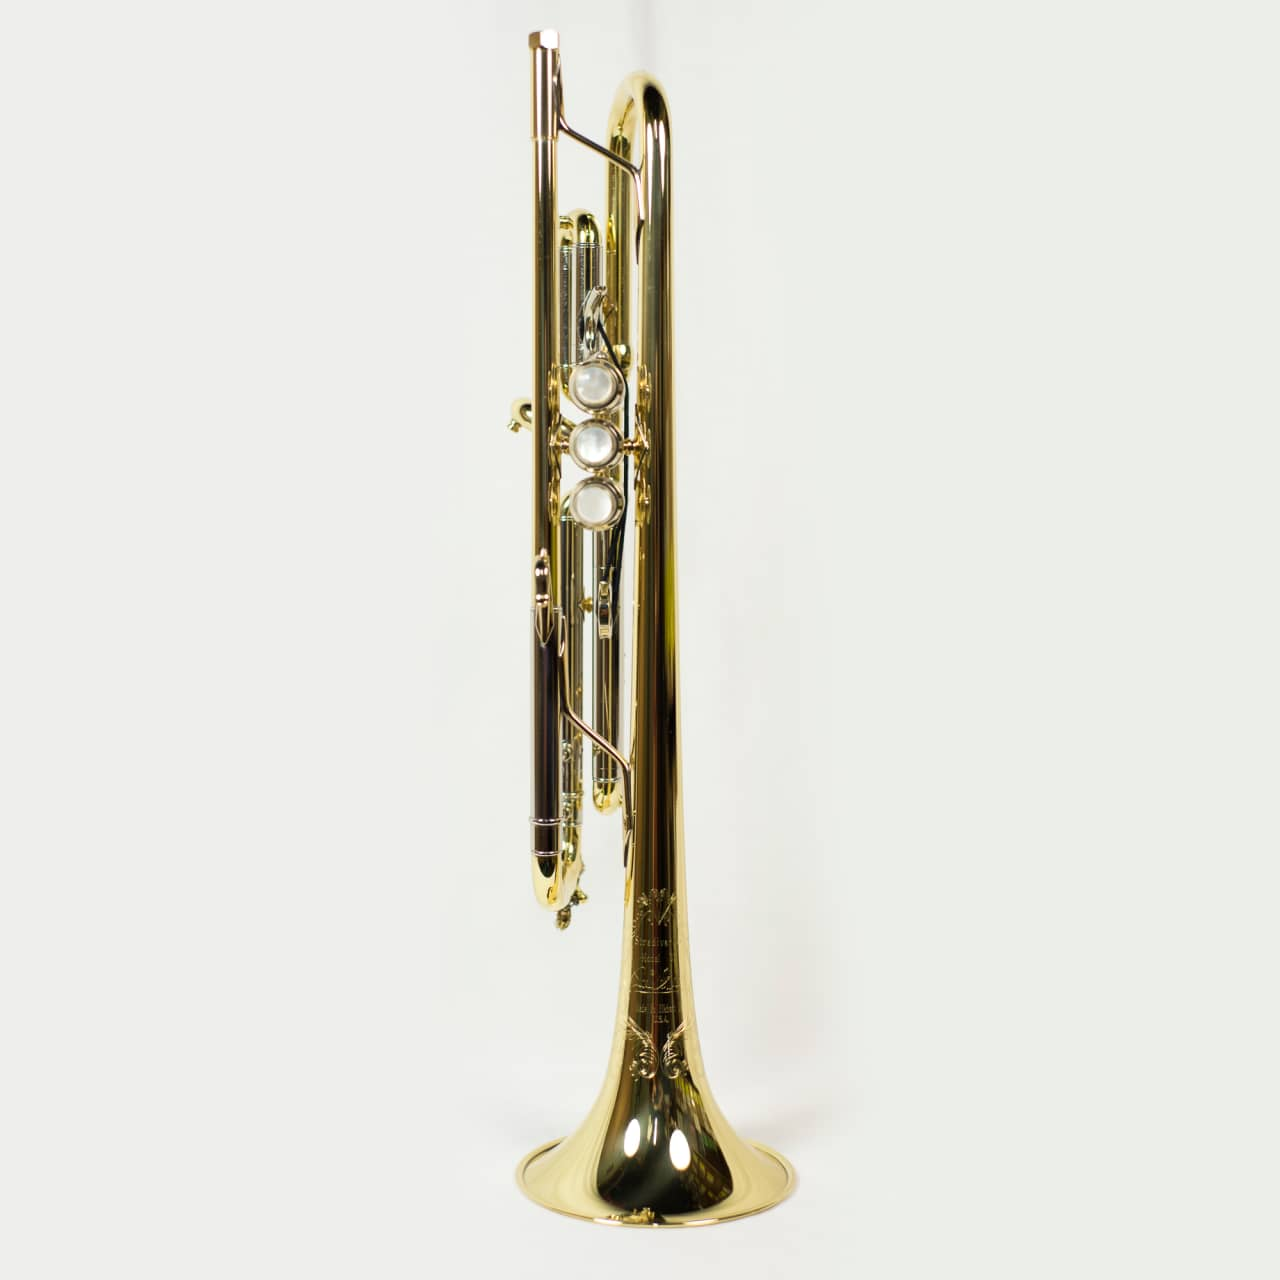 Top 10 Best Trumpet In 2019 Reviews & Buying Guide